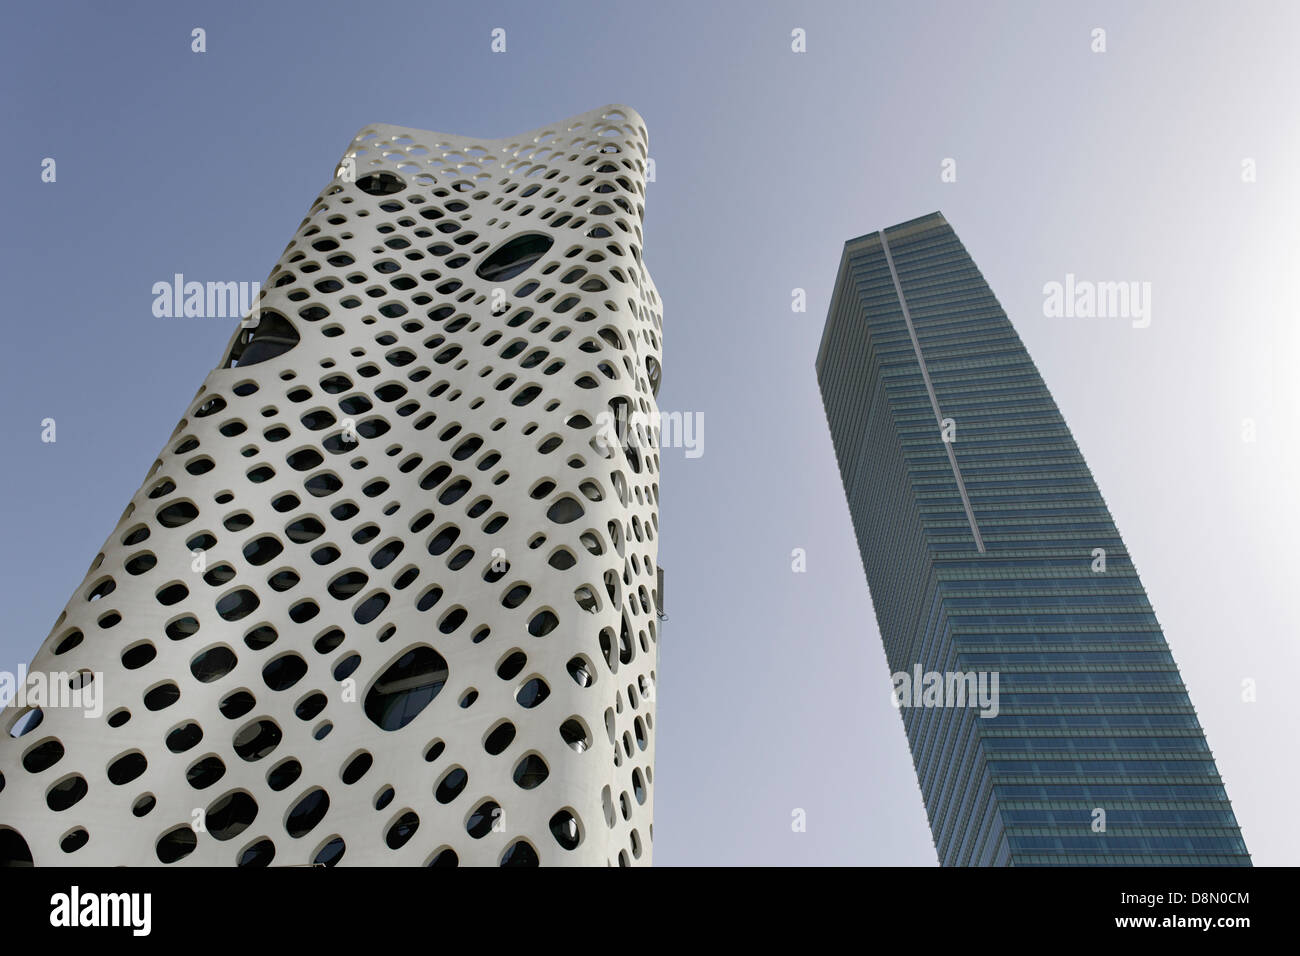 Ubora Tower And O 14 Office Tower, Dubai, United Arab Emirates